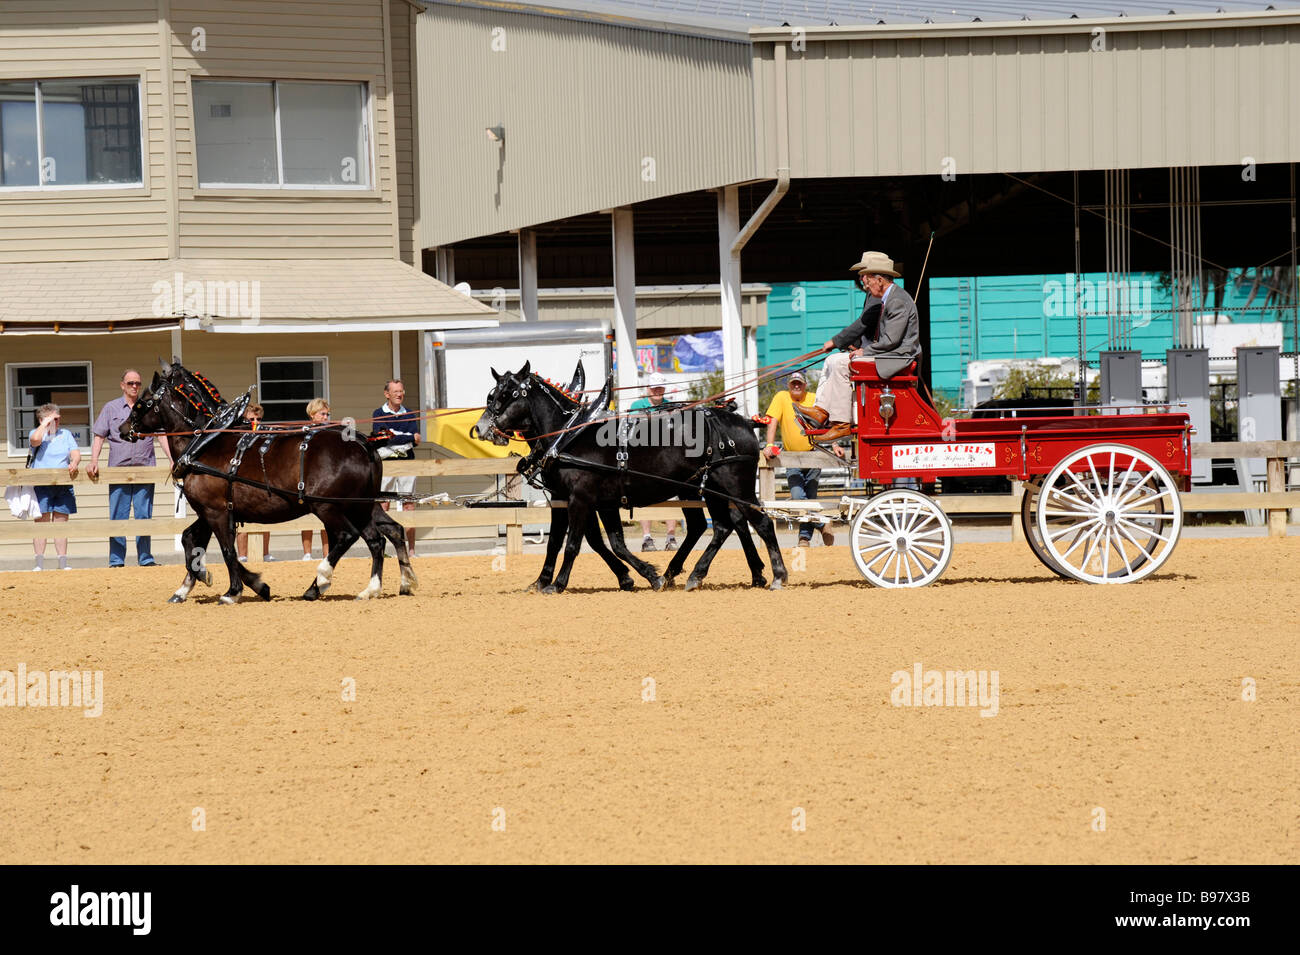 Draft for hitch horses at exhibition at Florida State Fairgrounds Tampa - Stock Image